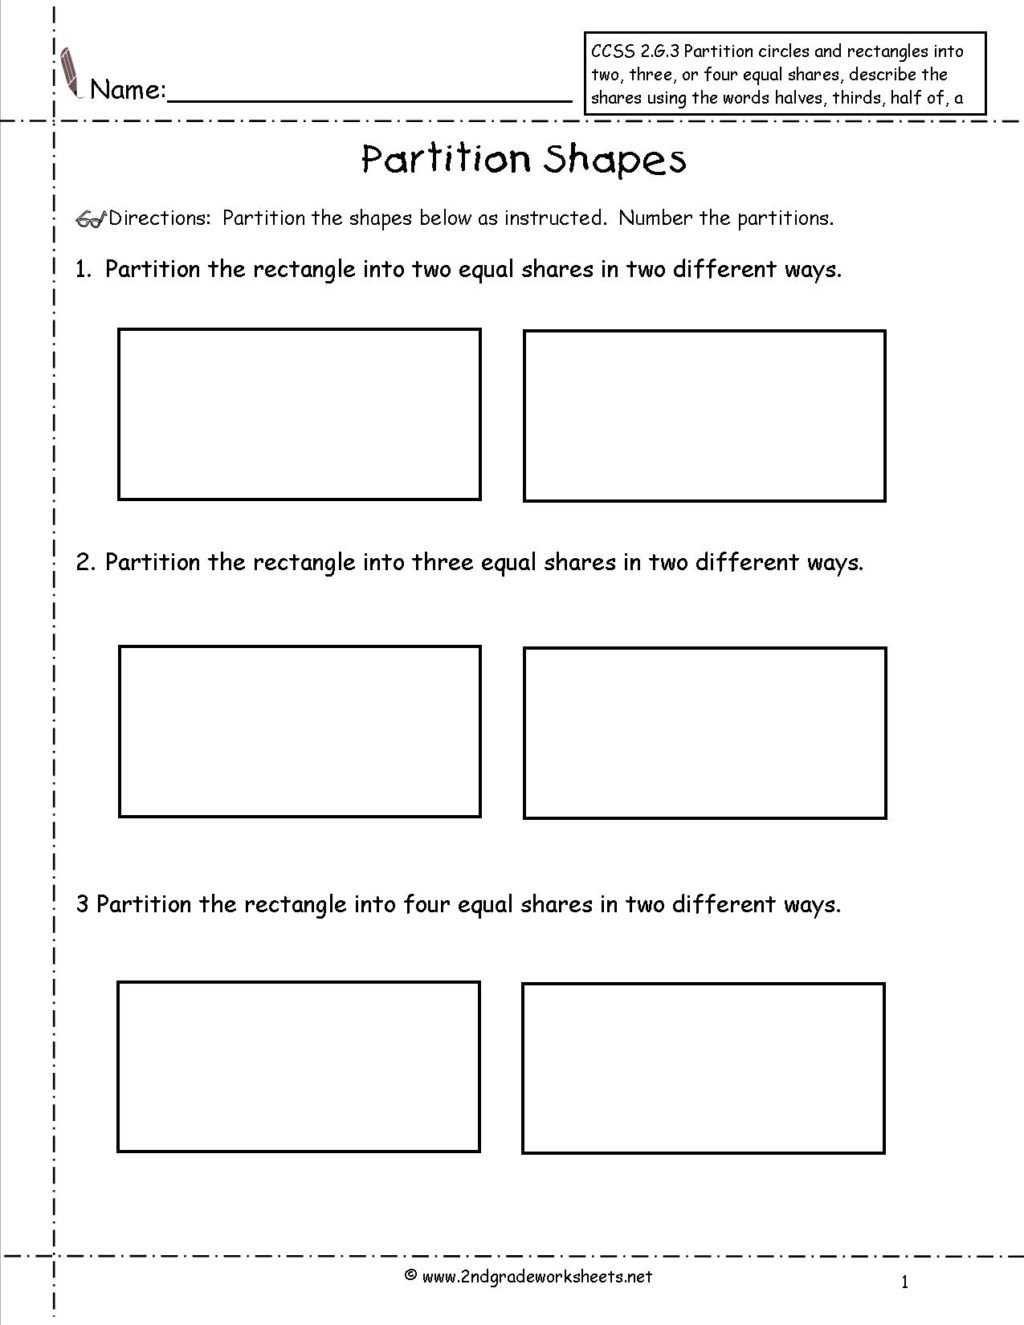 Polygon Worksheets 2nd Grade Worksheet 2nd Grade Geometry Worksheets Ccss G Partition